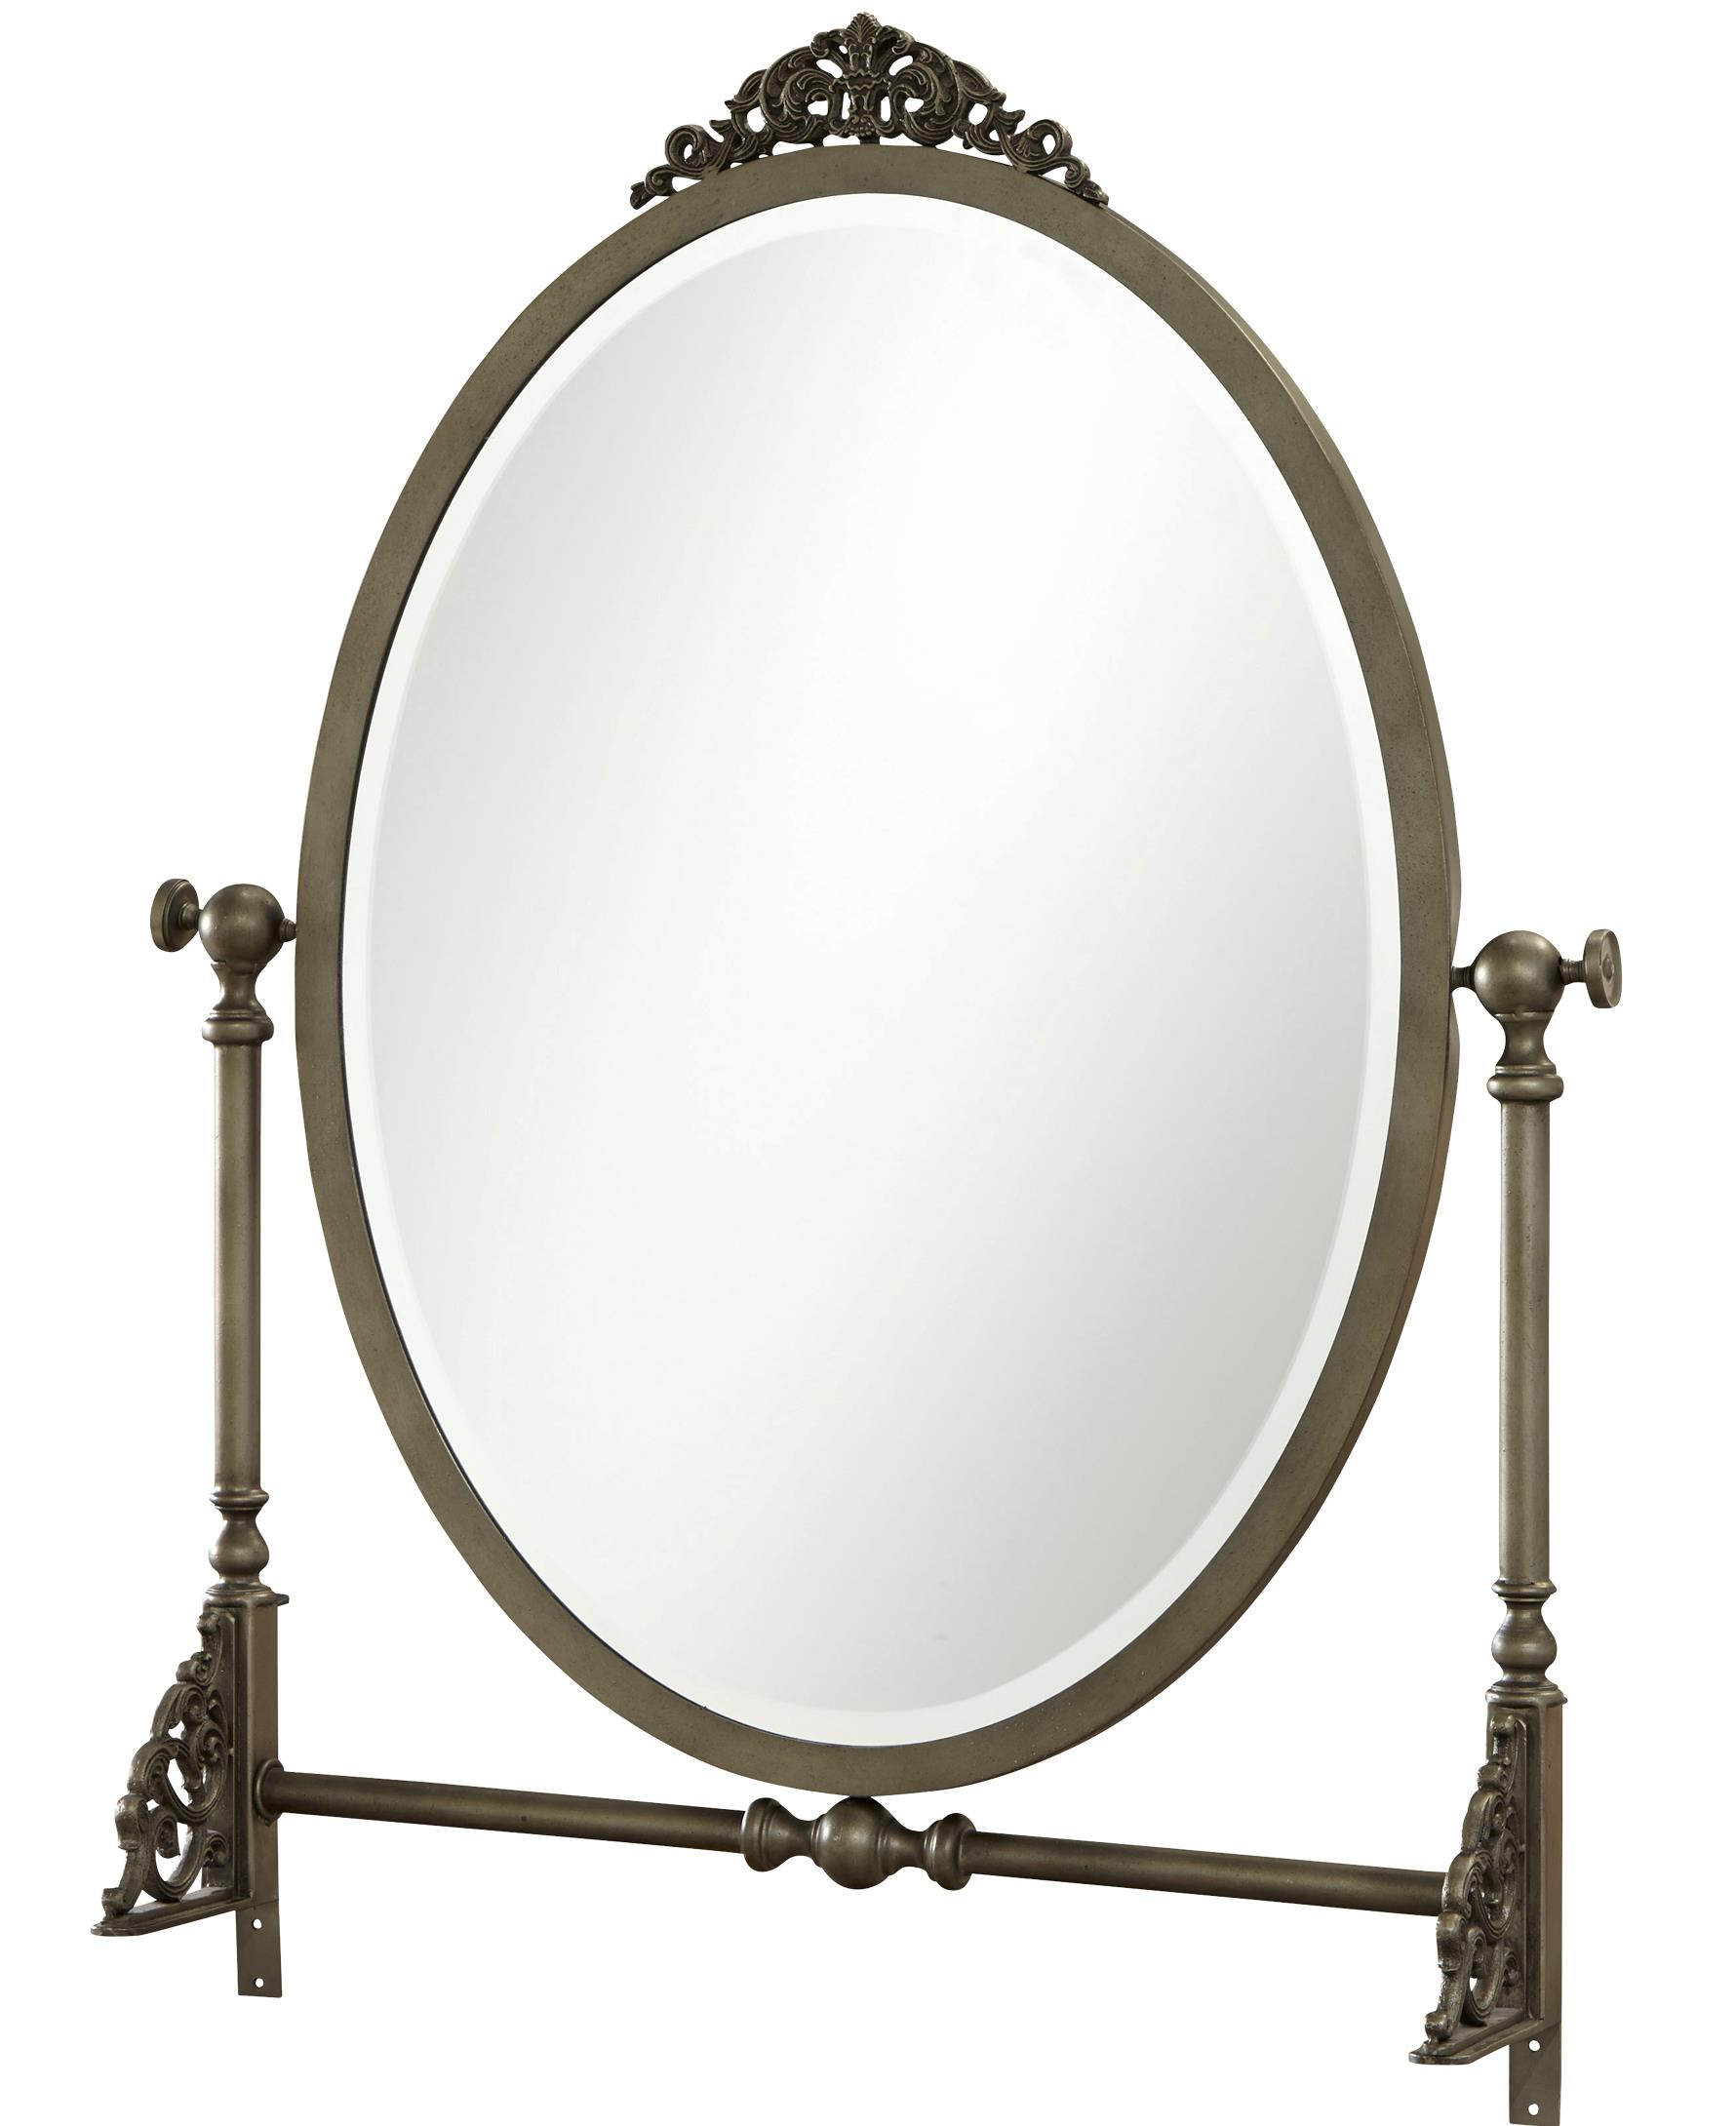 Morris Home Furnishings Penelope Penelope Mirror - Item Number: 434A033